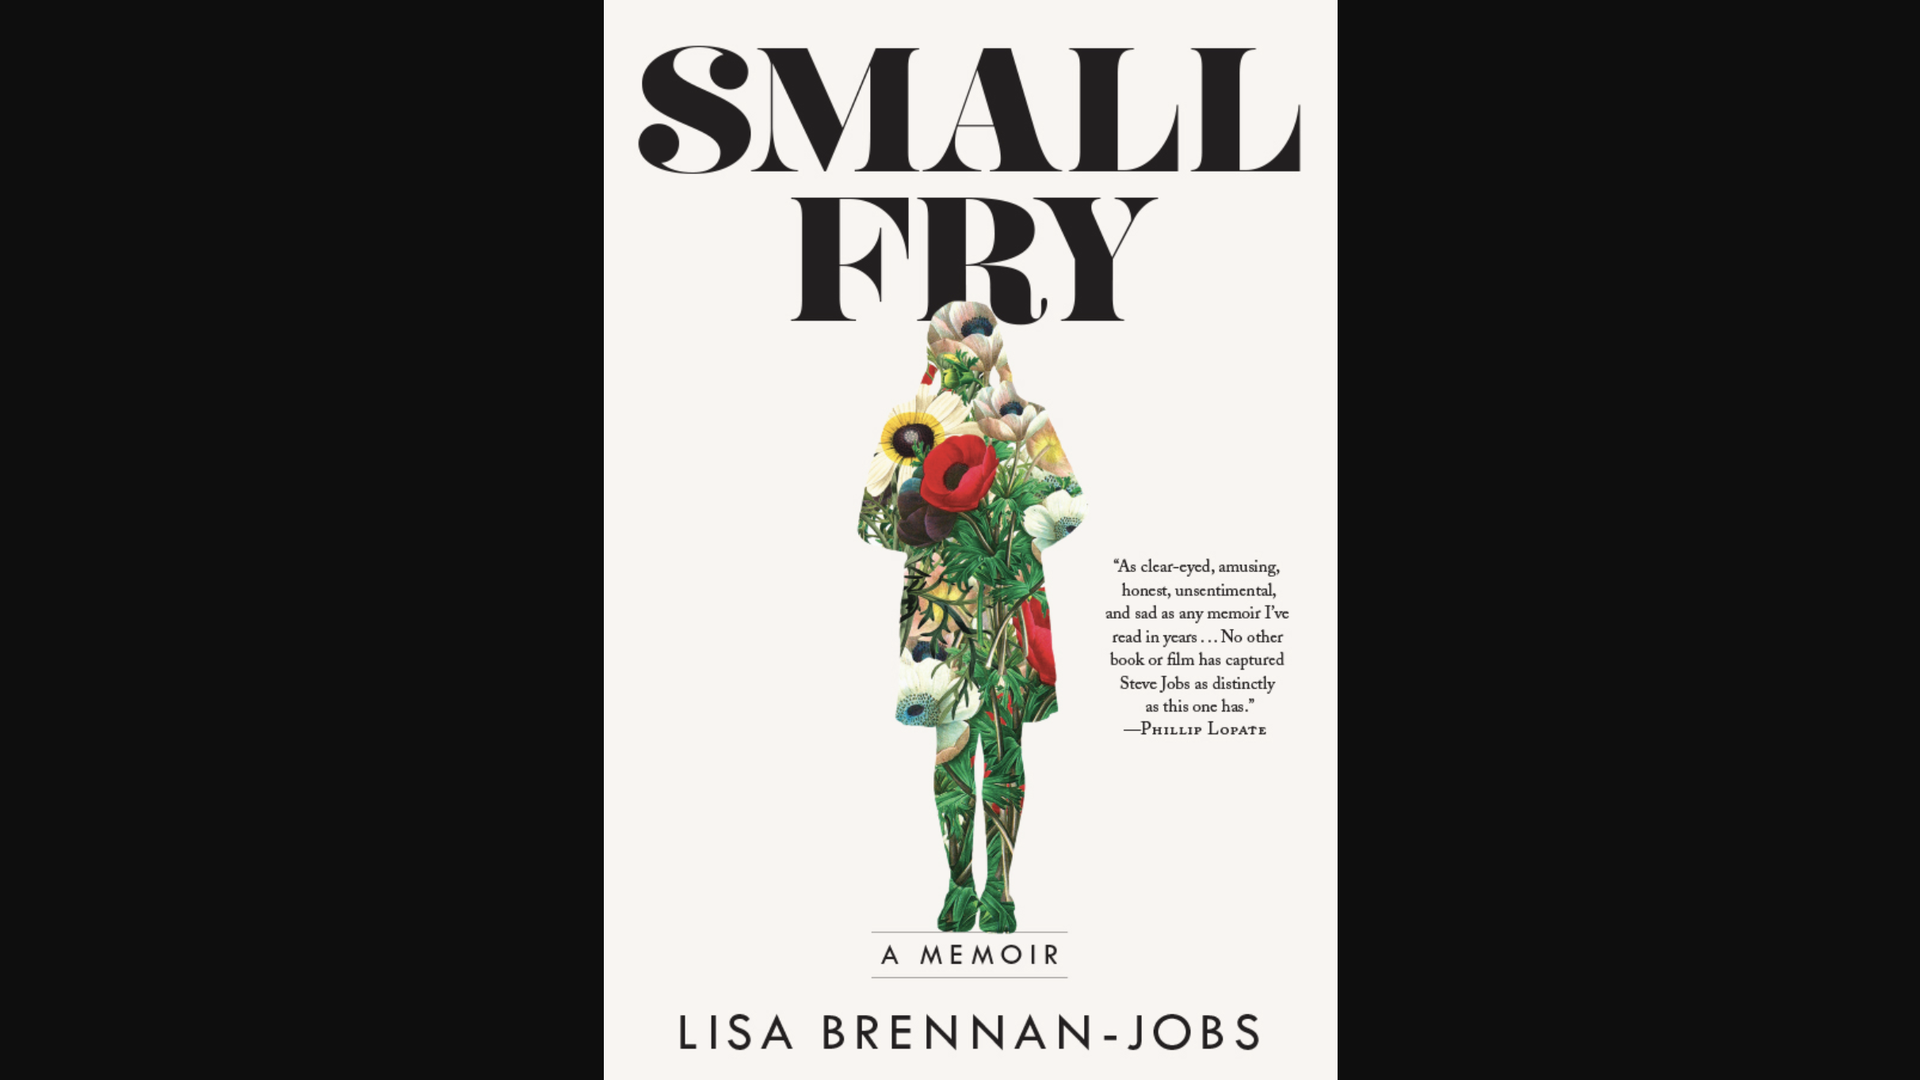 Book cover of Small Fry, the forthcoming memoir from Lisa Brennan-Jobs